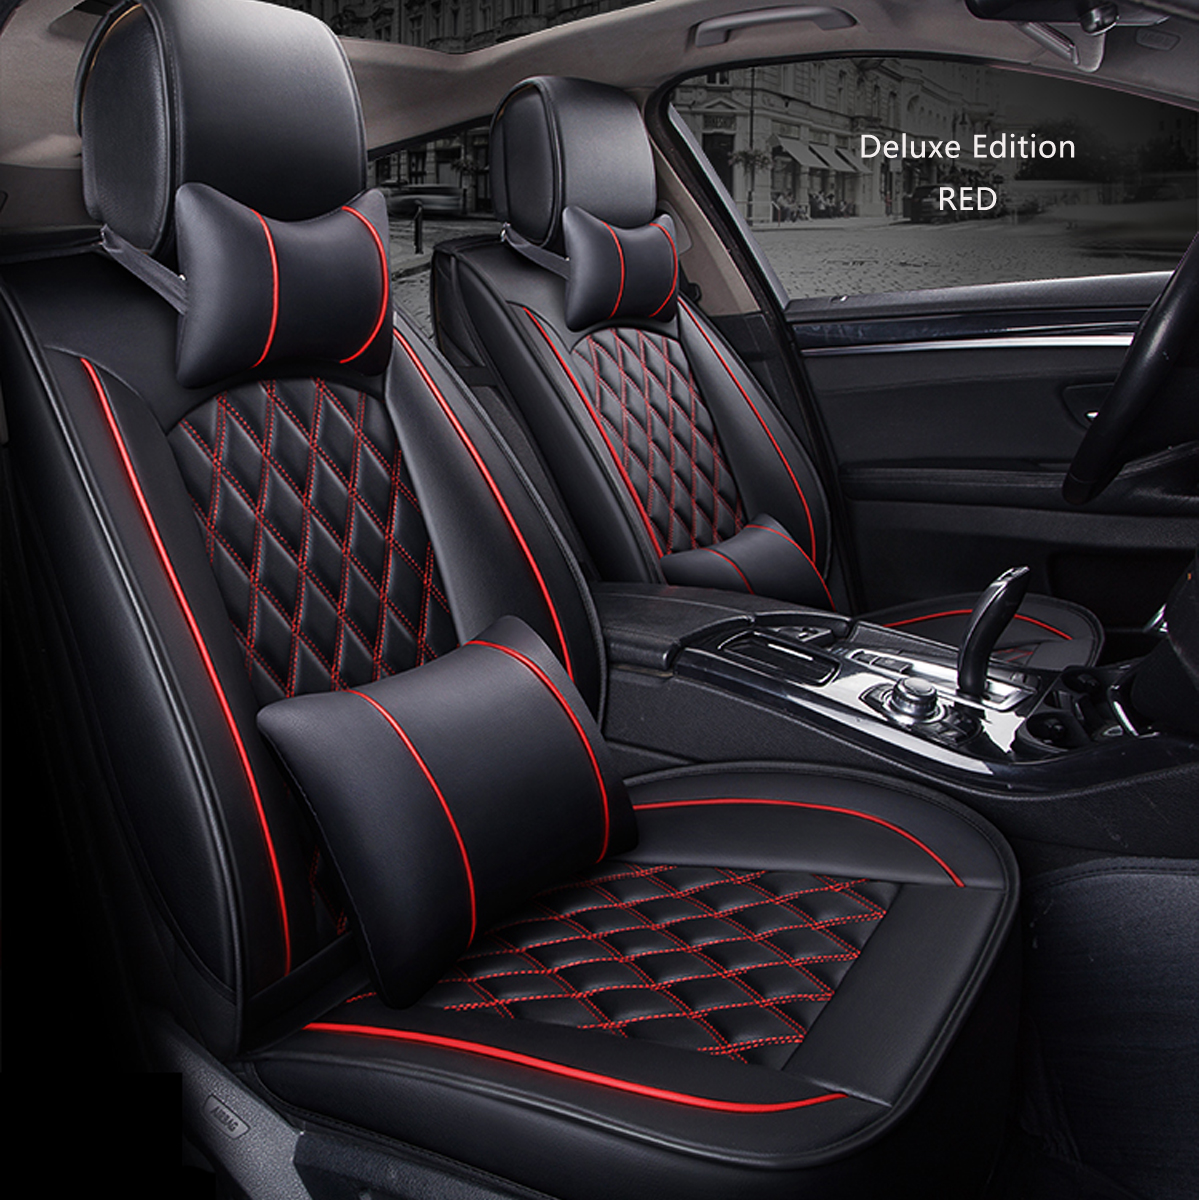 Universal 5 Seat PU Leather Full Set Car Seat Cover}